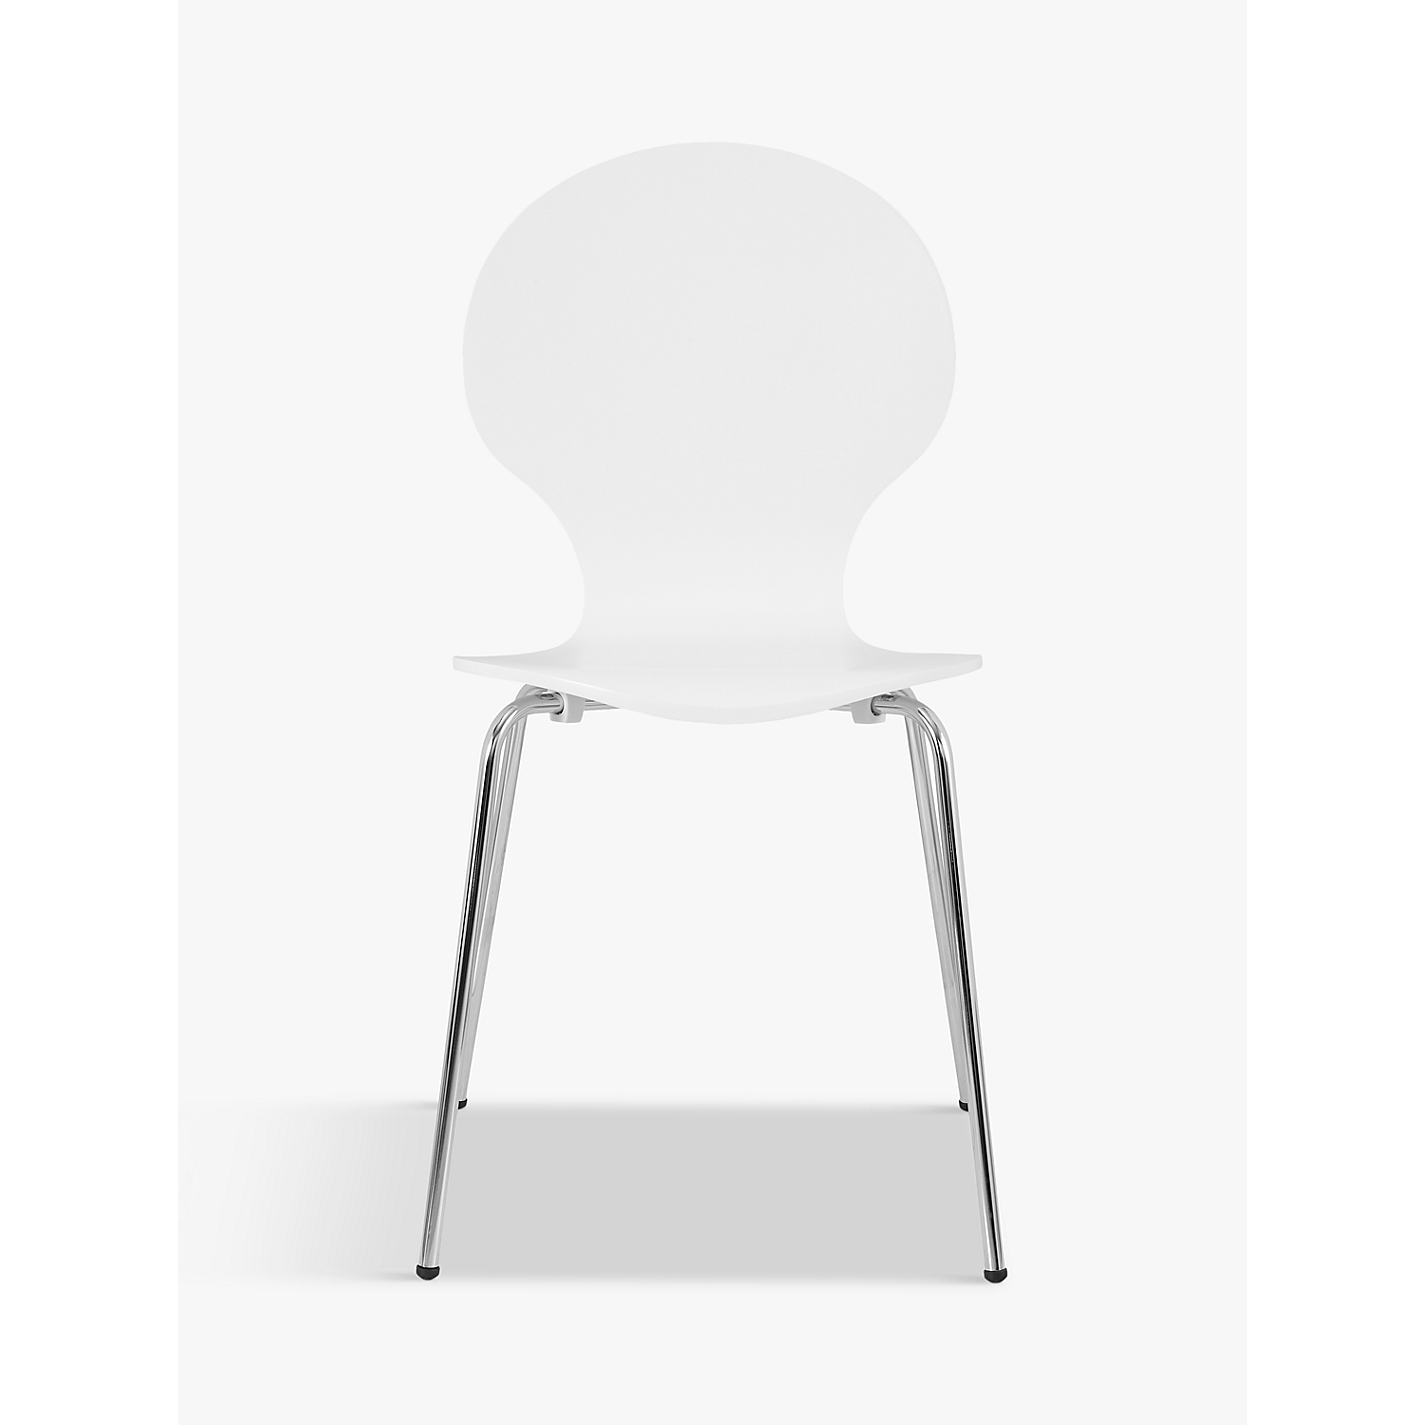 Buy House by John Lewis Curve Dining Chair  White Online at johnlewis com   Buy House by John Lewis Curve Dining Chair  White   John Lewis. Seat Pads For Dining Chairs John Lewis. Home Design Ideas